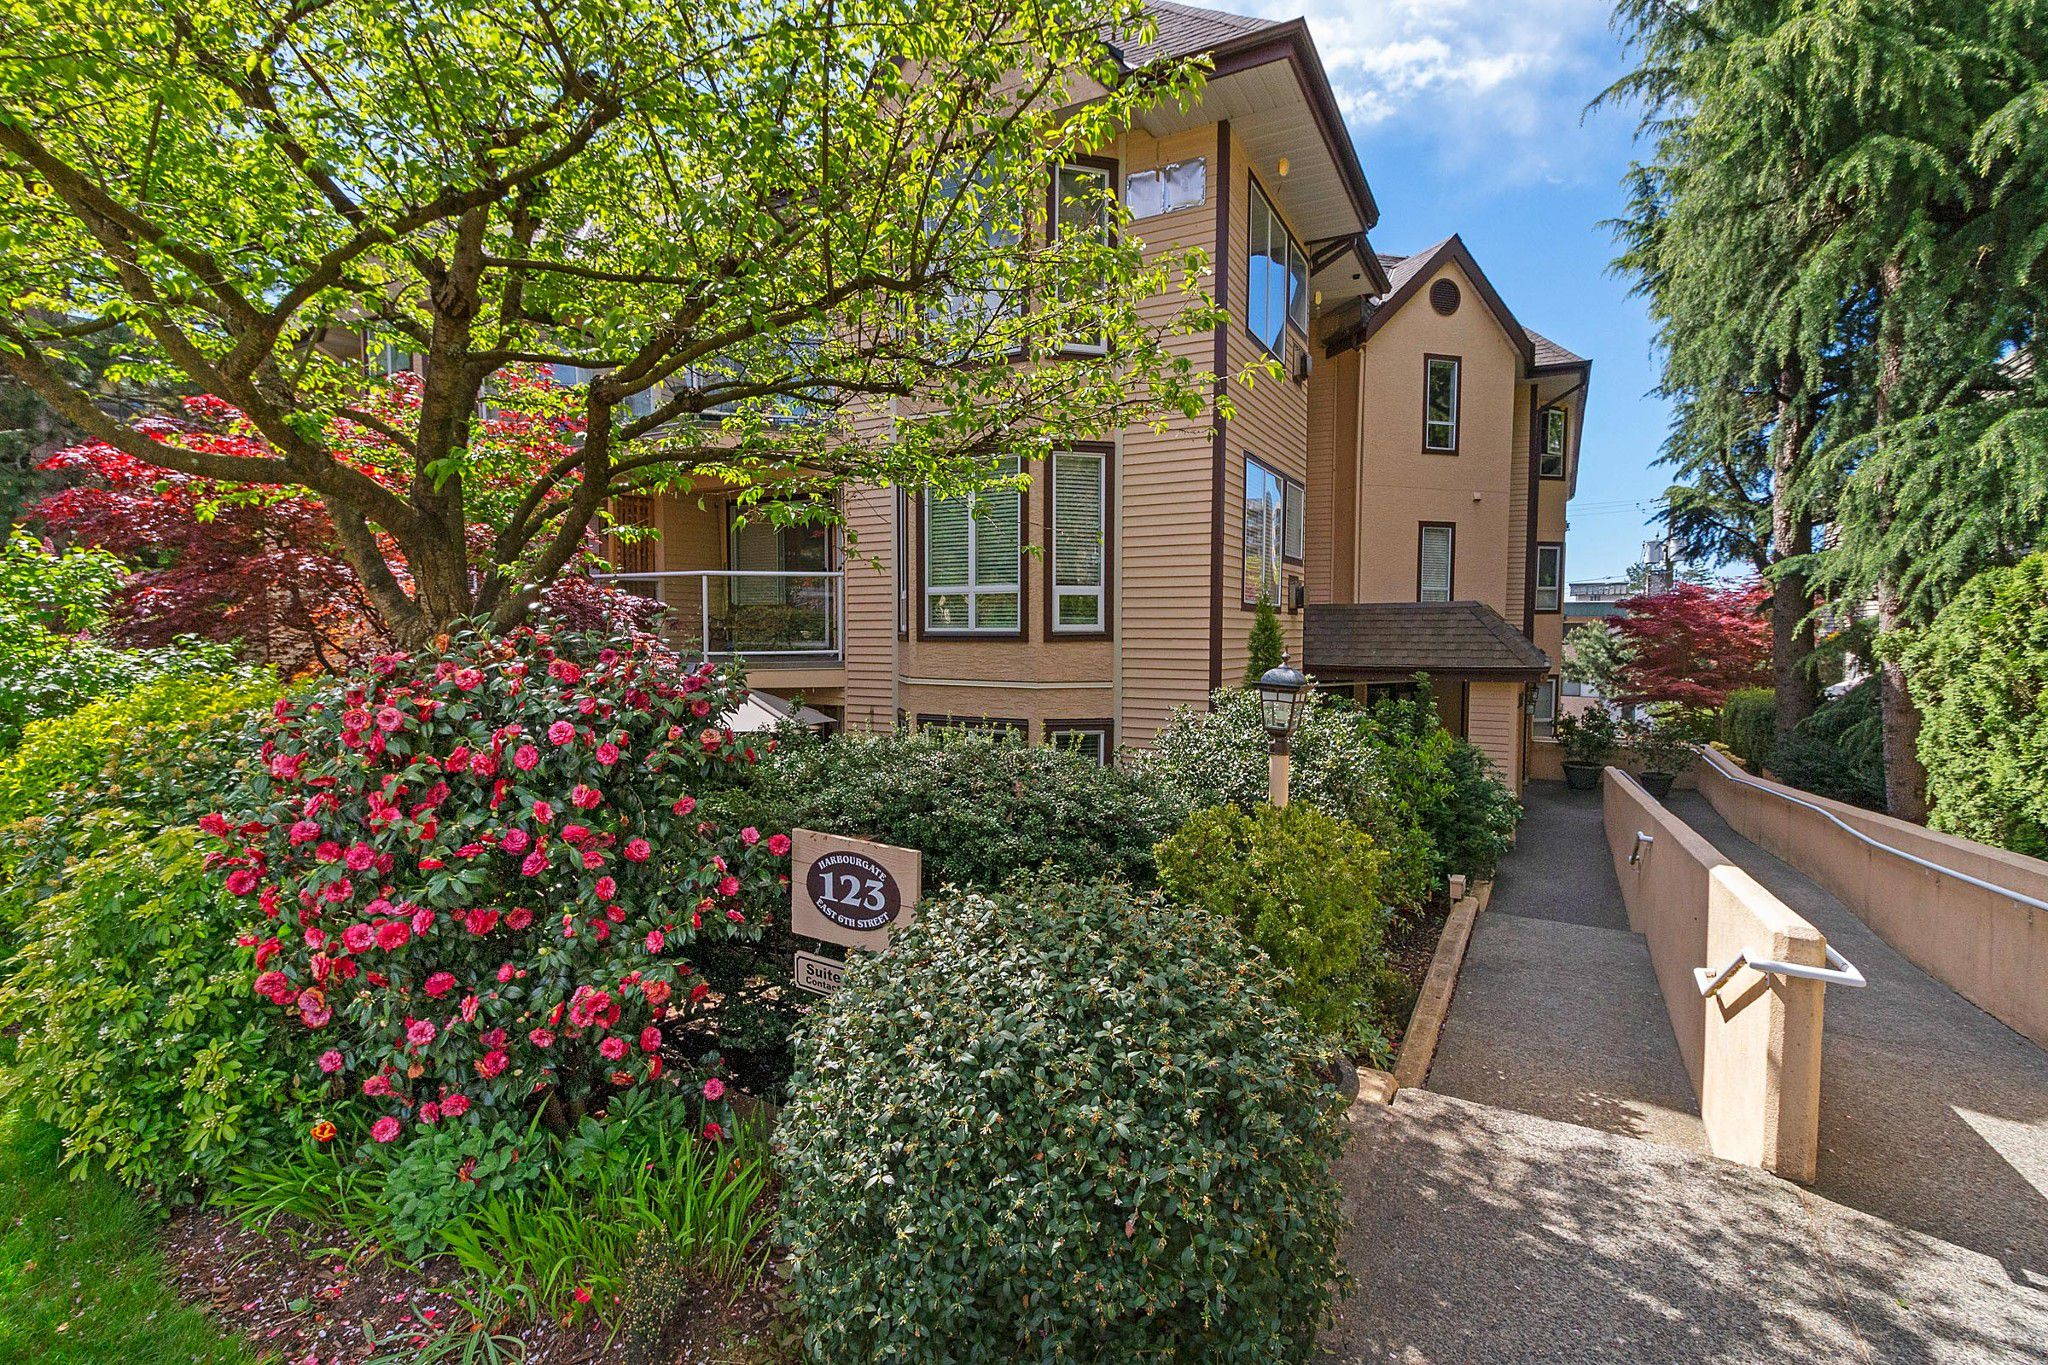 """Main Photo: 101 123 E 6TH Street in North Vancouver: Lower Lonsdale Condo for sale in """"HARBOURGATE"""" : MLS®# R2364777"""